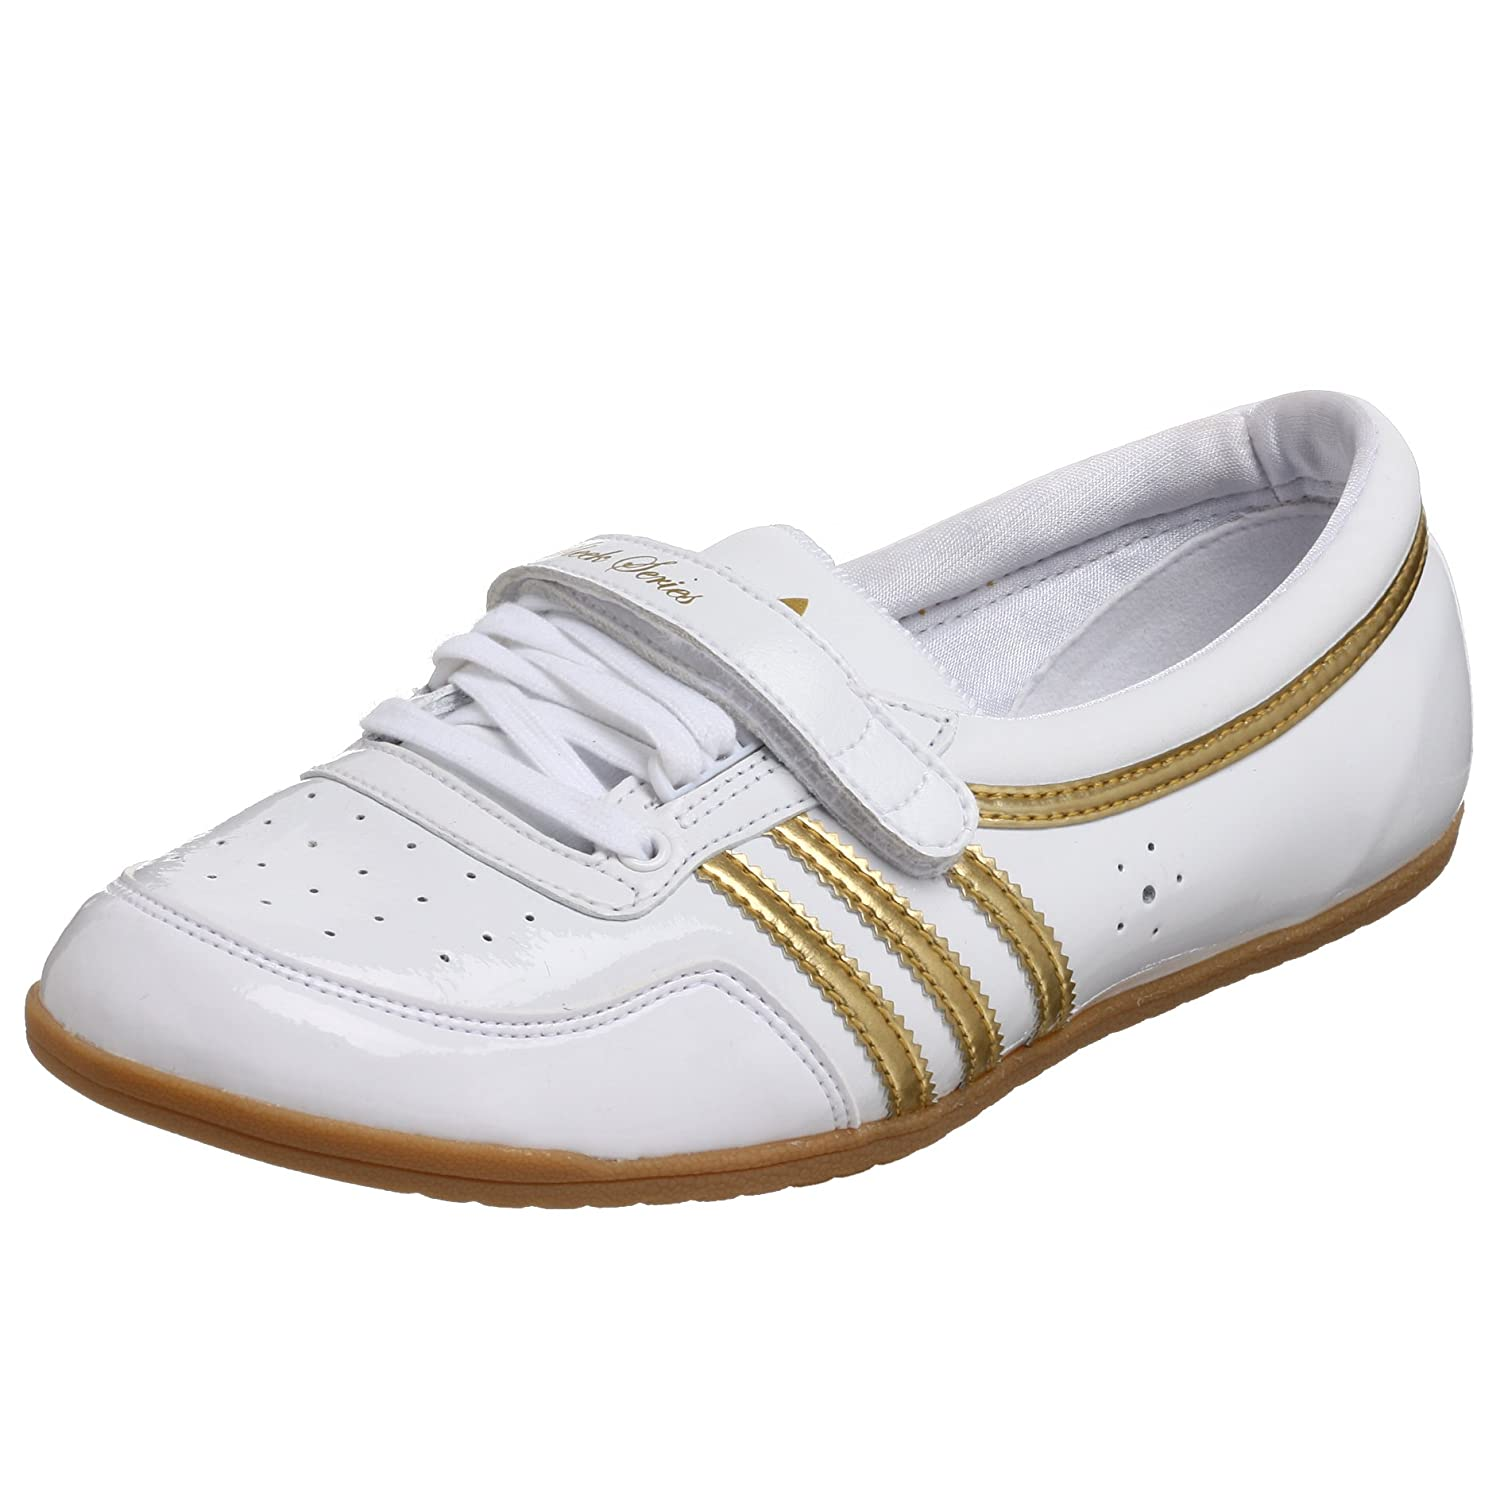 NEW WOMENS ADIDAS CONCORD ROUND W SLEEK